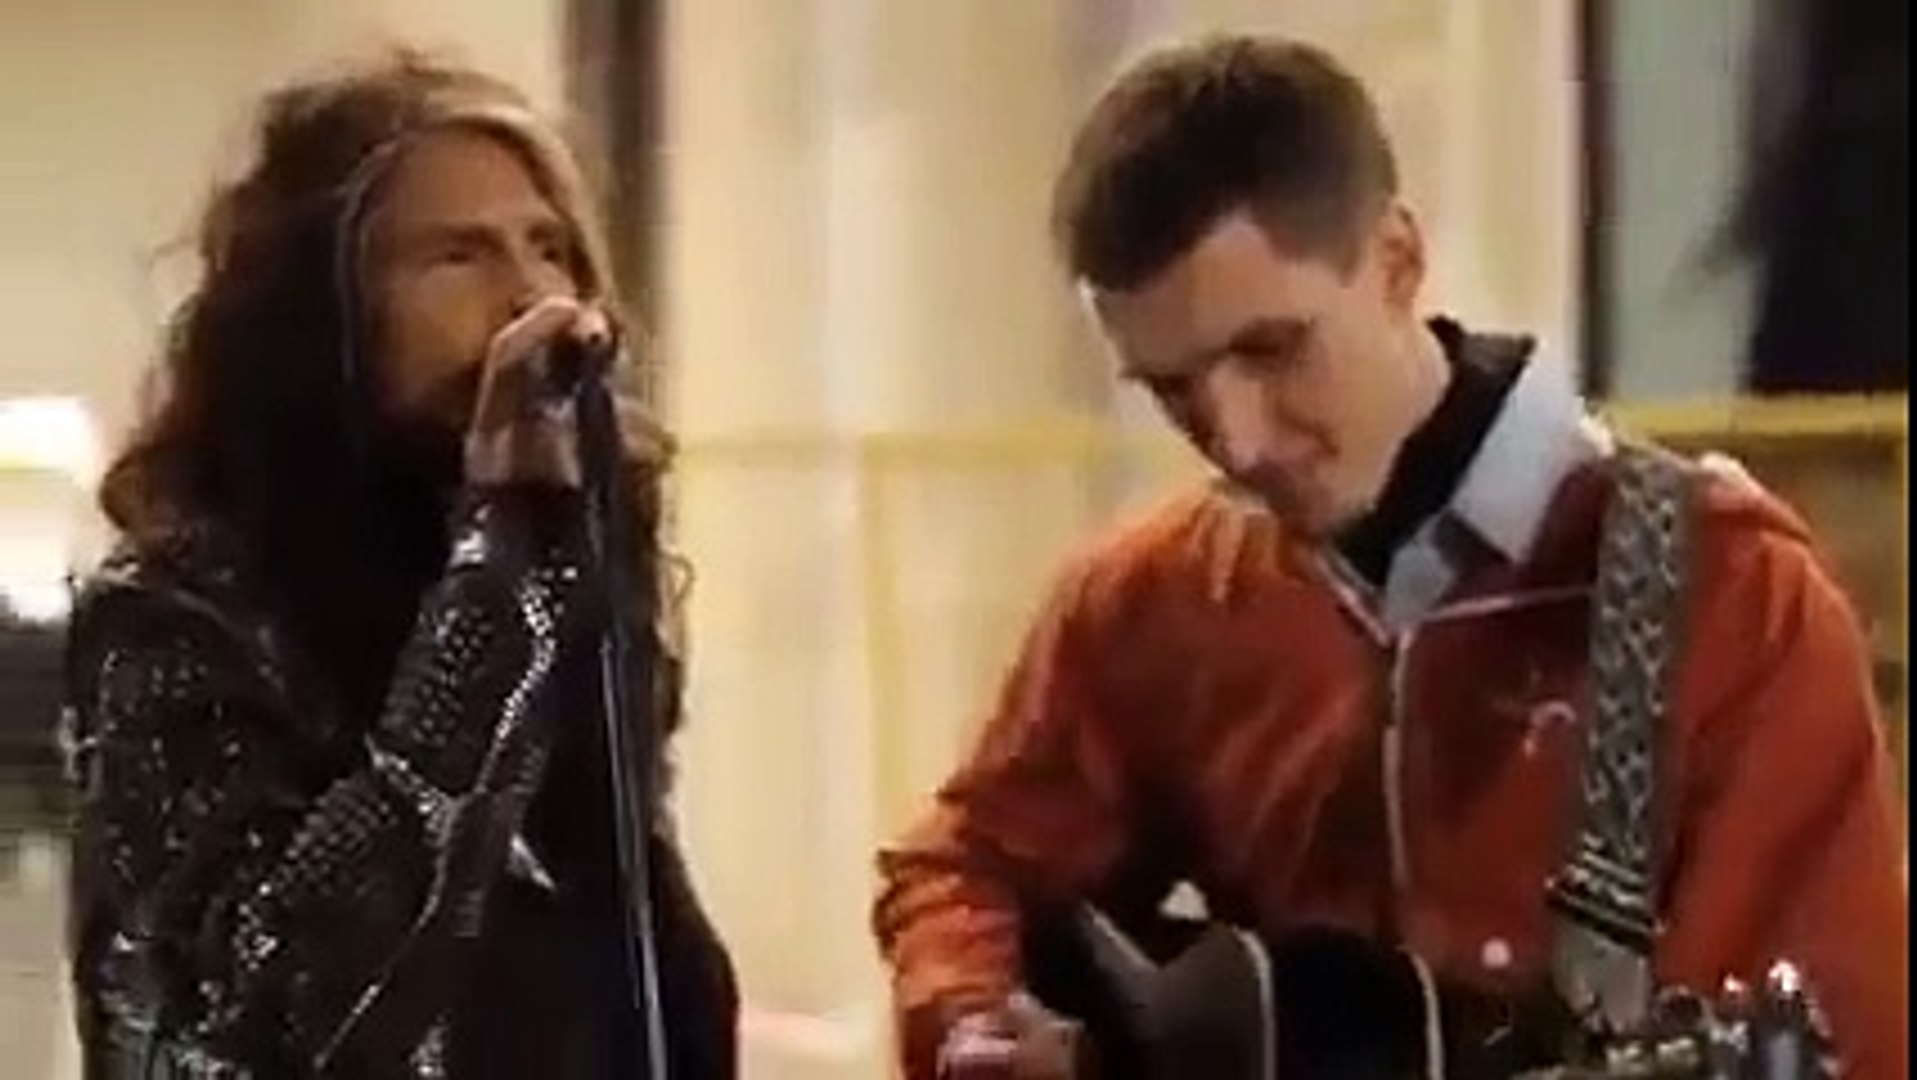 Aerosmith Steven Tyler singing with street musician in Moscow!